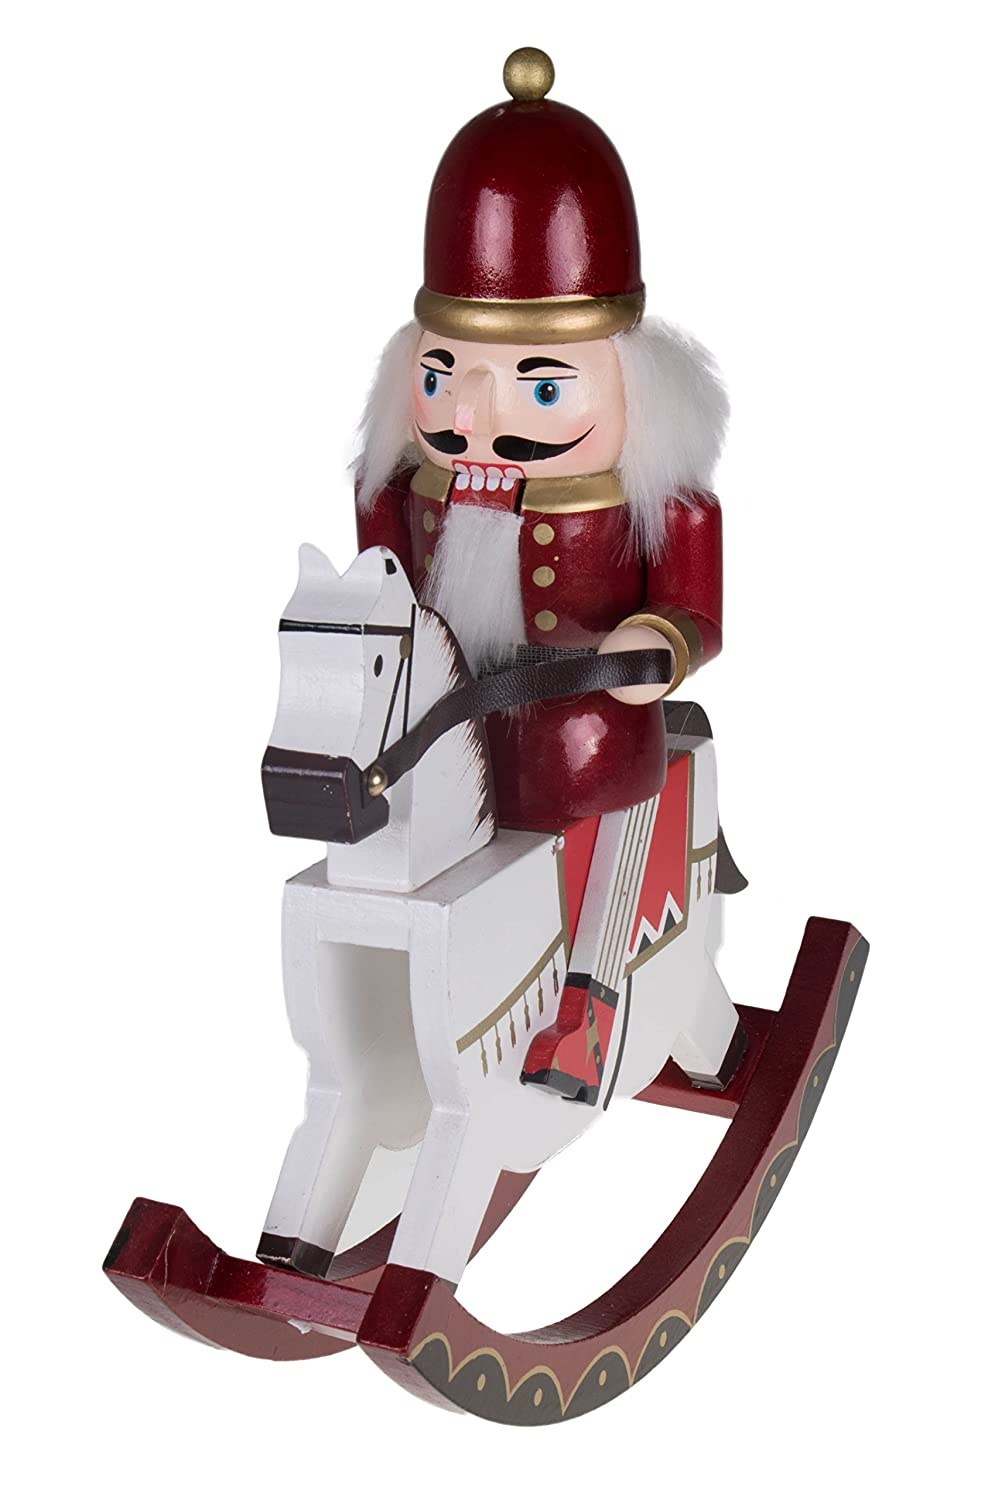 Amazon: Soldier Nutcracker Rocking Horse By Clever Creations   Collectible Wooden Christmas Nutcracker  Festive Holiday Decor  Riding  White Rocking